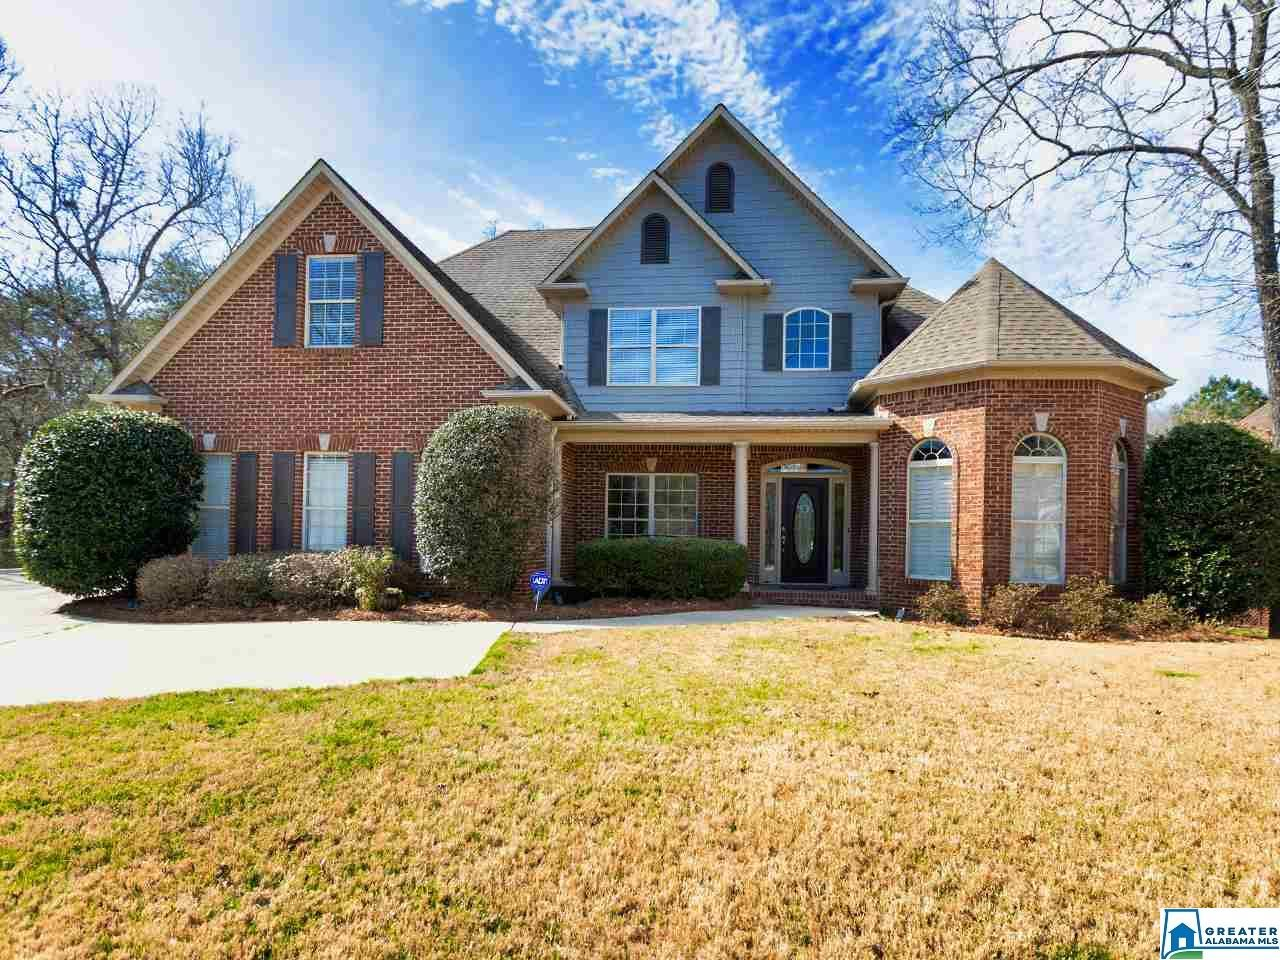 1505 WOODLANDS PL, Hoover, AL 35080 - #: 869028